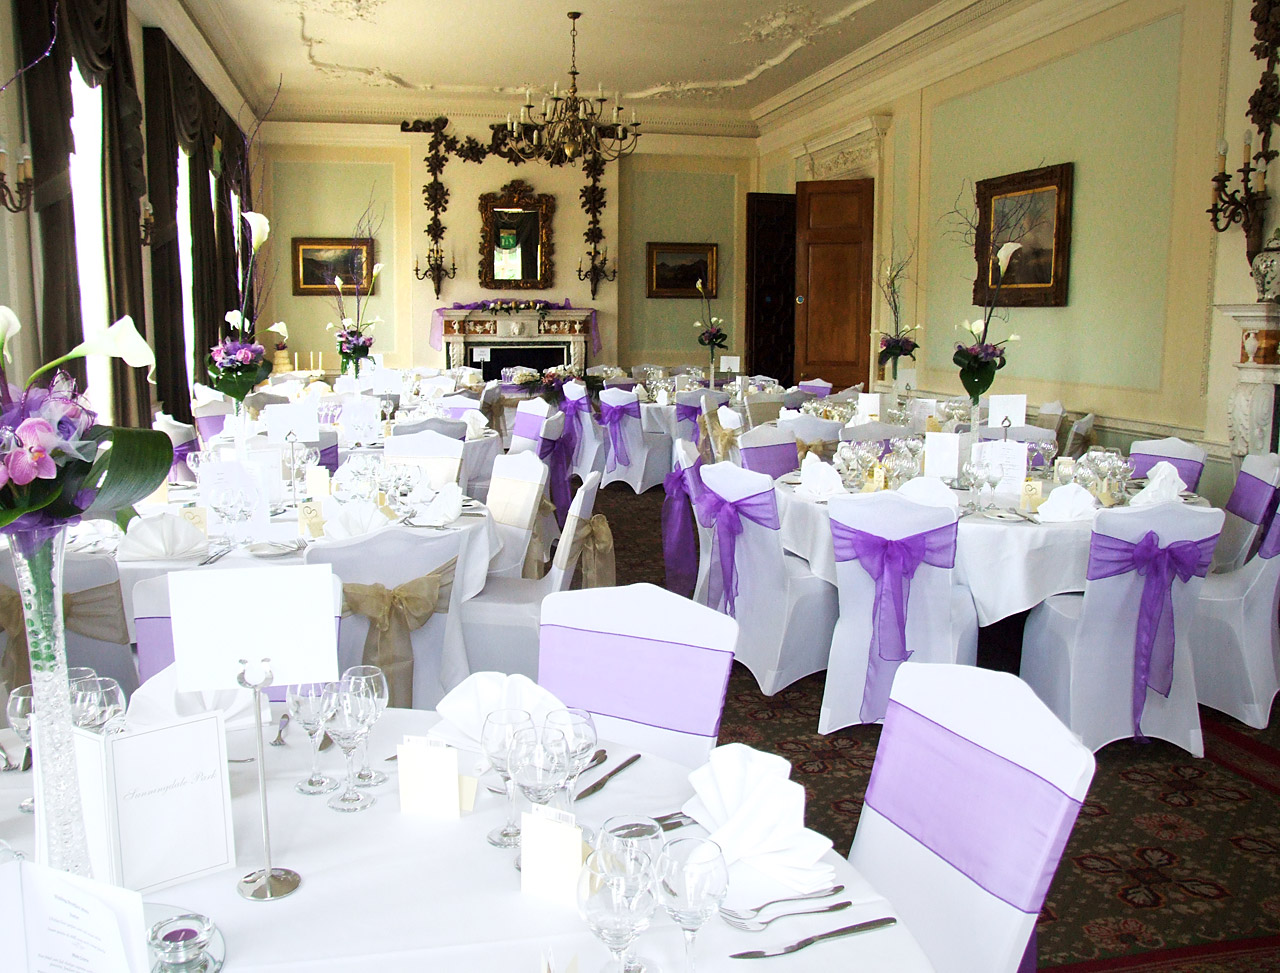 Stylish Seating Chair Covers and Sashes